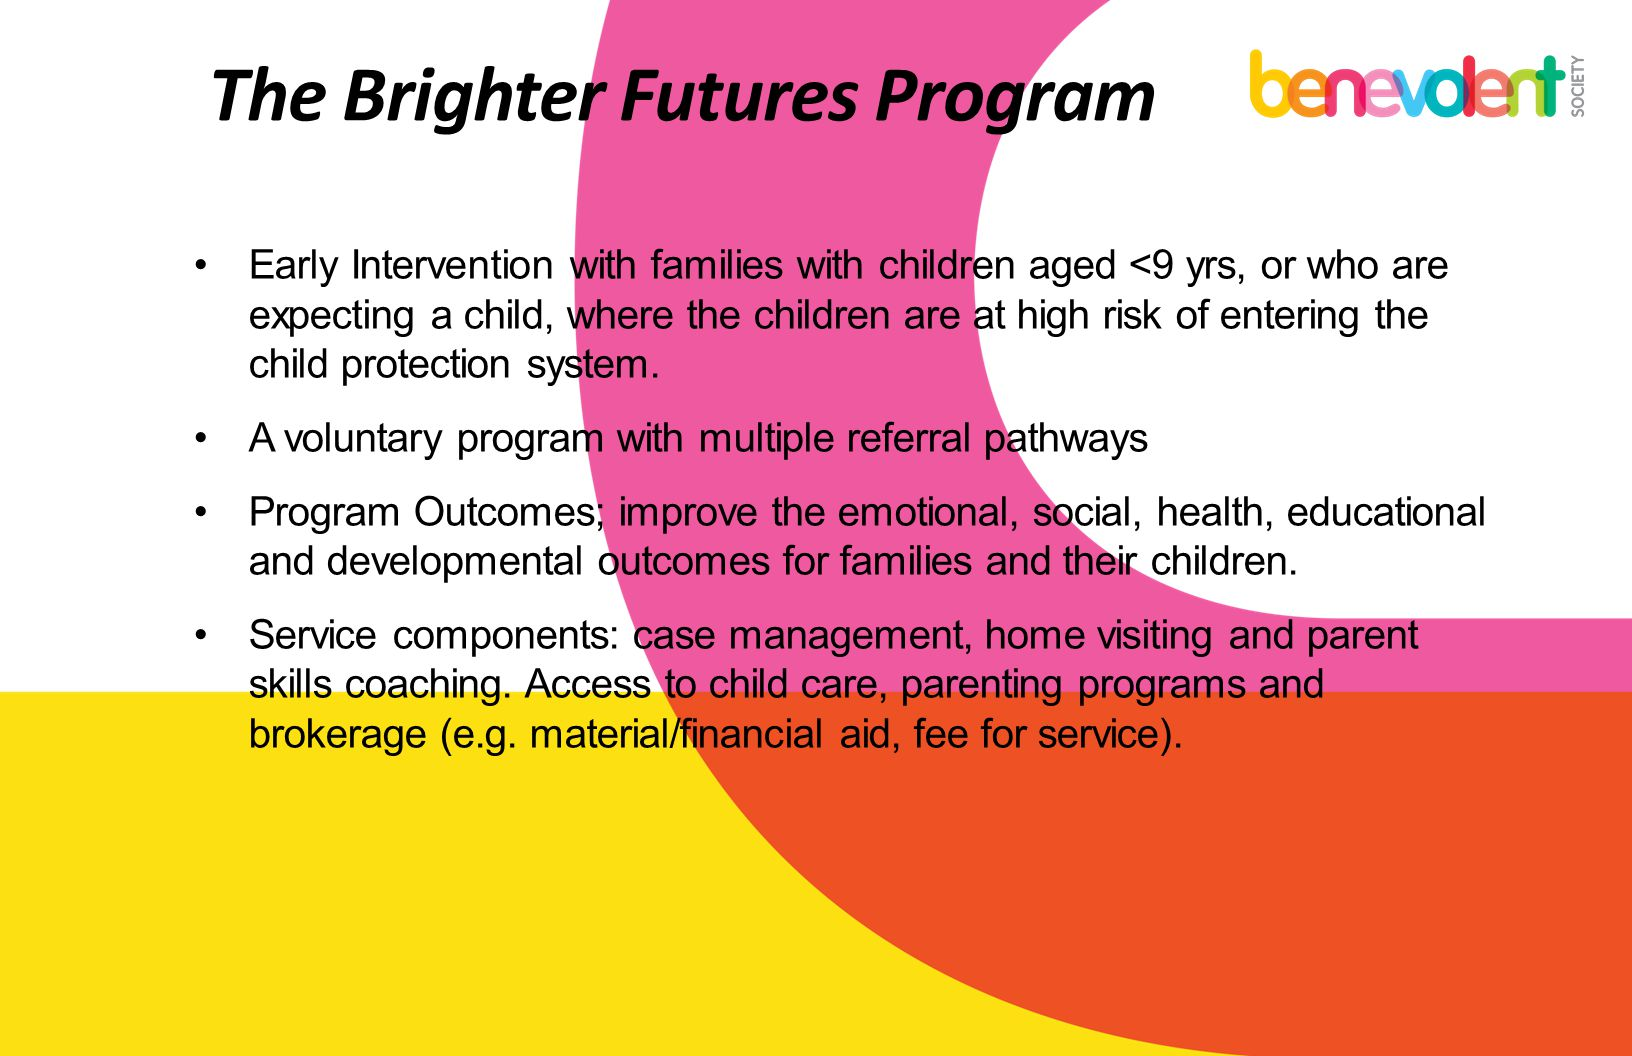 The Brighter Futures Program